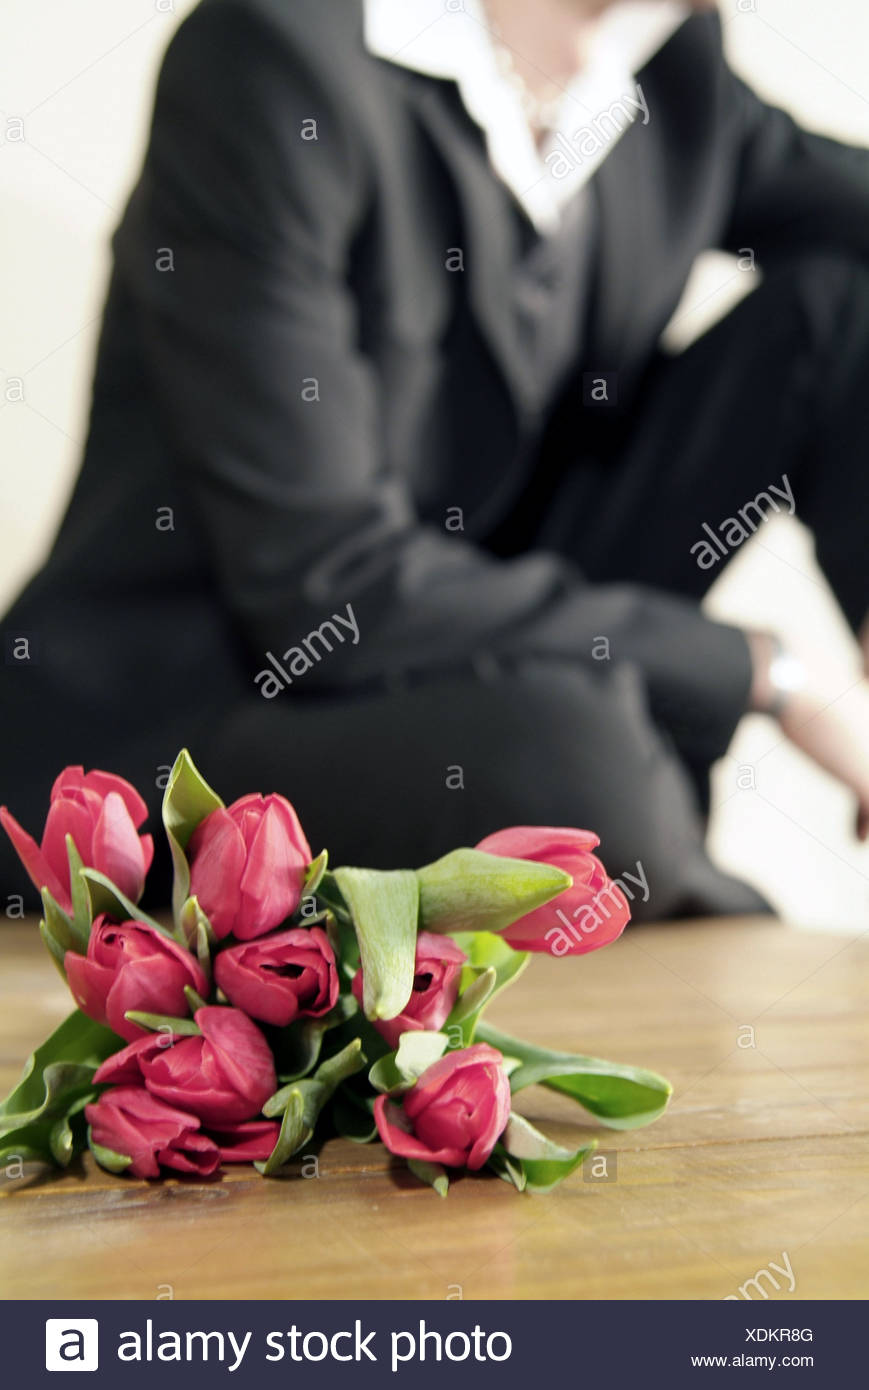 Apology Flowers Stock Photos & Apology Flowers Stock Images - Alamy